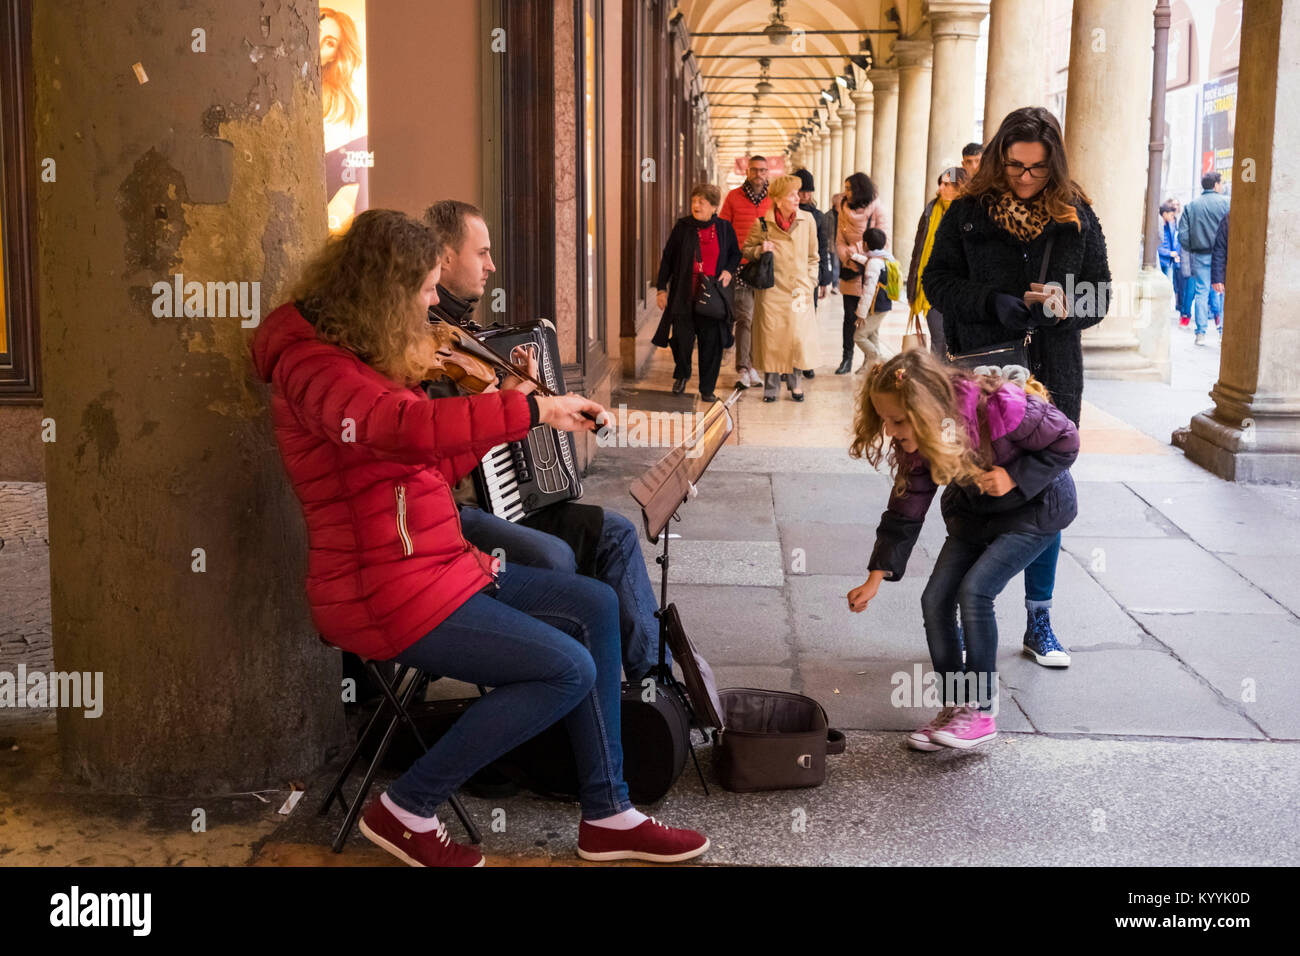 Buskers under the Porticos in Bologna city centre, Italy - Stock Image